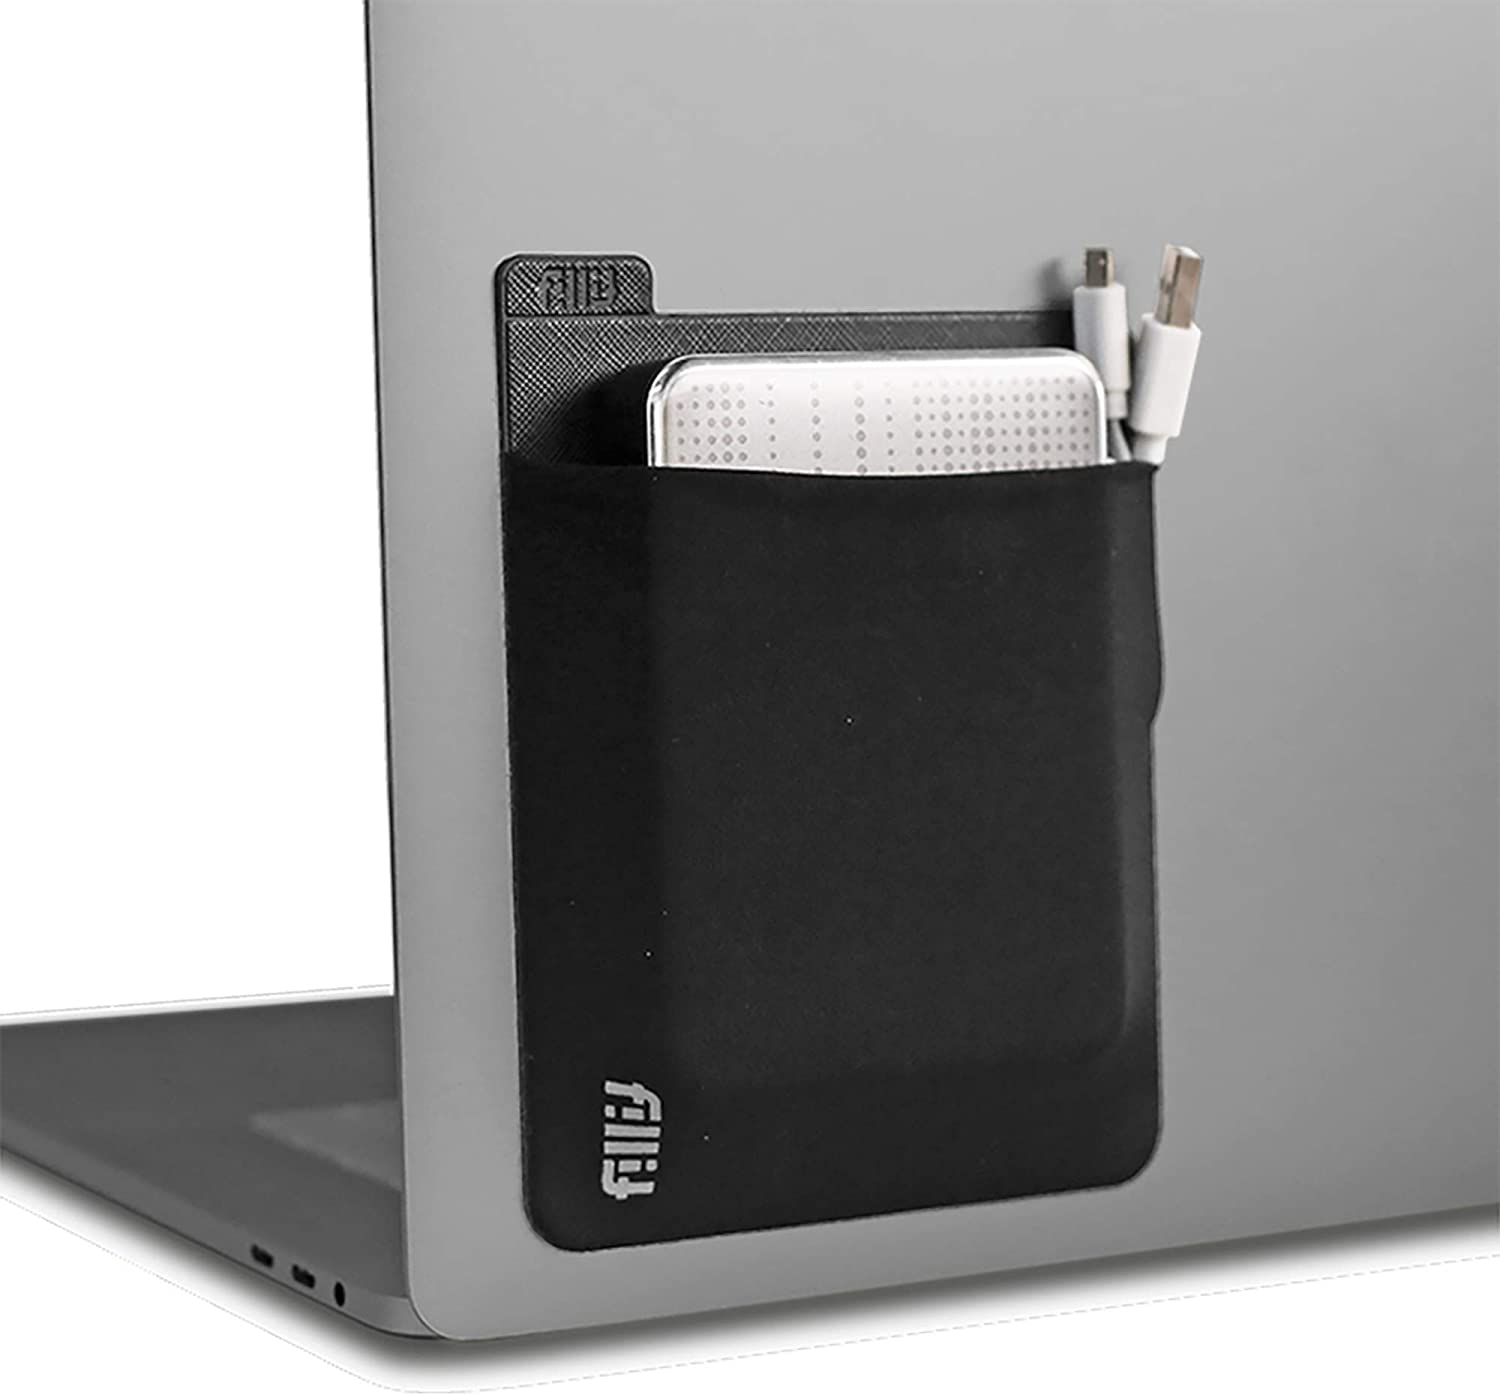 Fillit Pocket, Black, Reusable Adhesive Pocket Storage for External Hard Drives, Battery Packs, Cables, and Other Small Personal Items